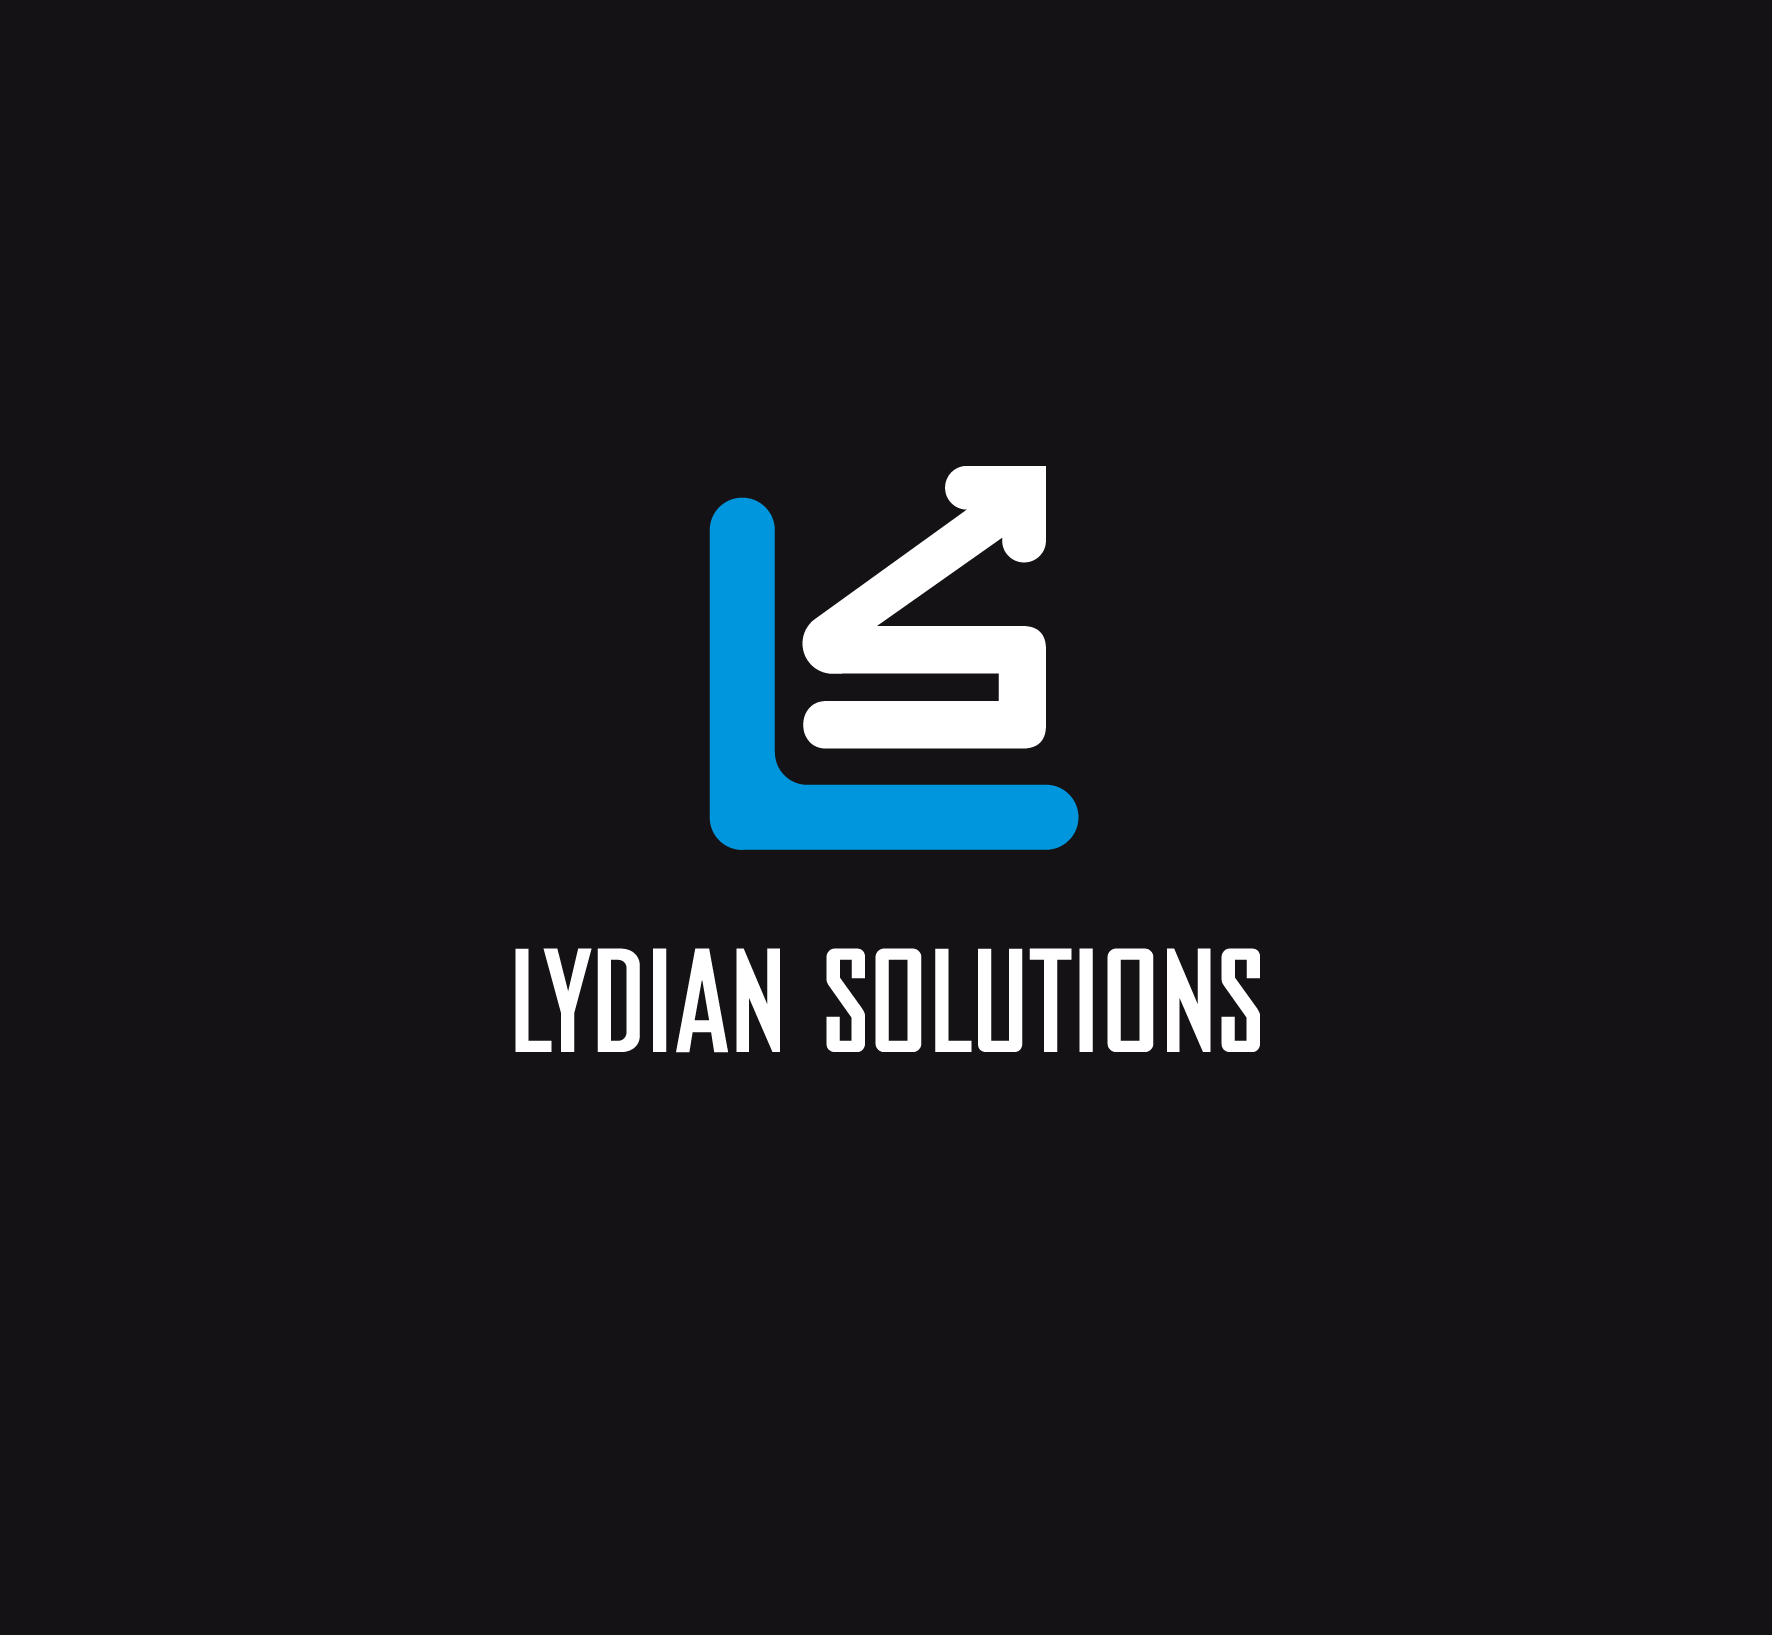 Logo Design by luna - Entry No. 59 in the Logo Design Contest Fun Logo Design for Lydian Solutions.